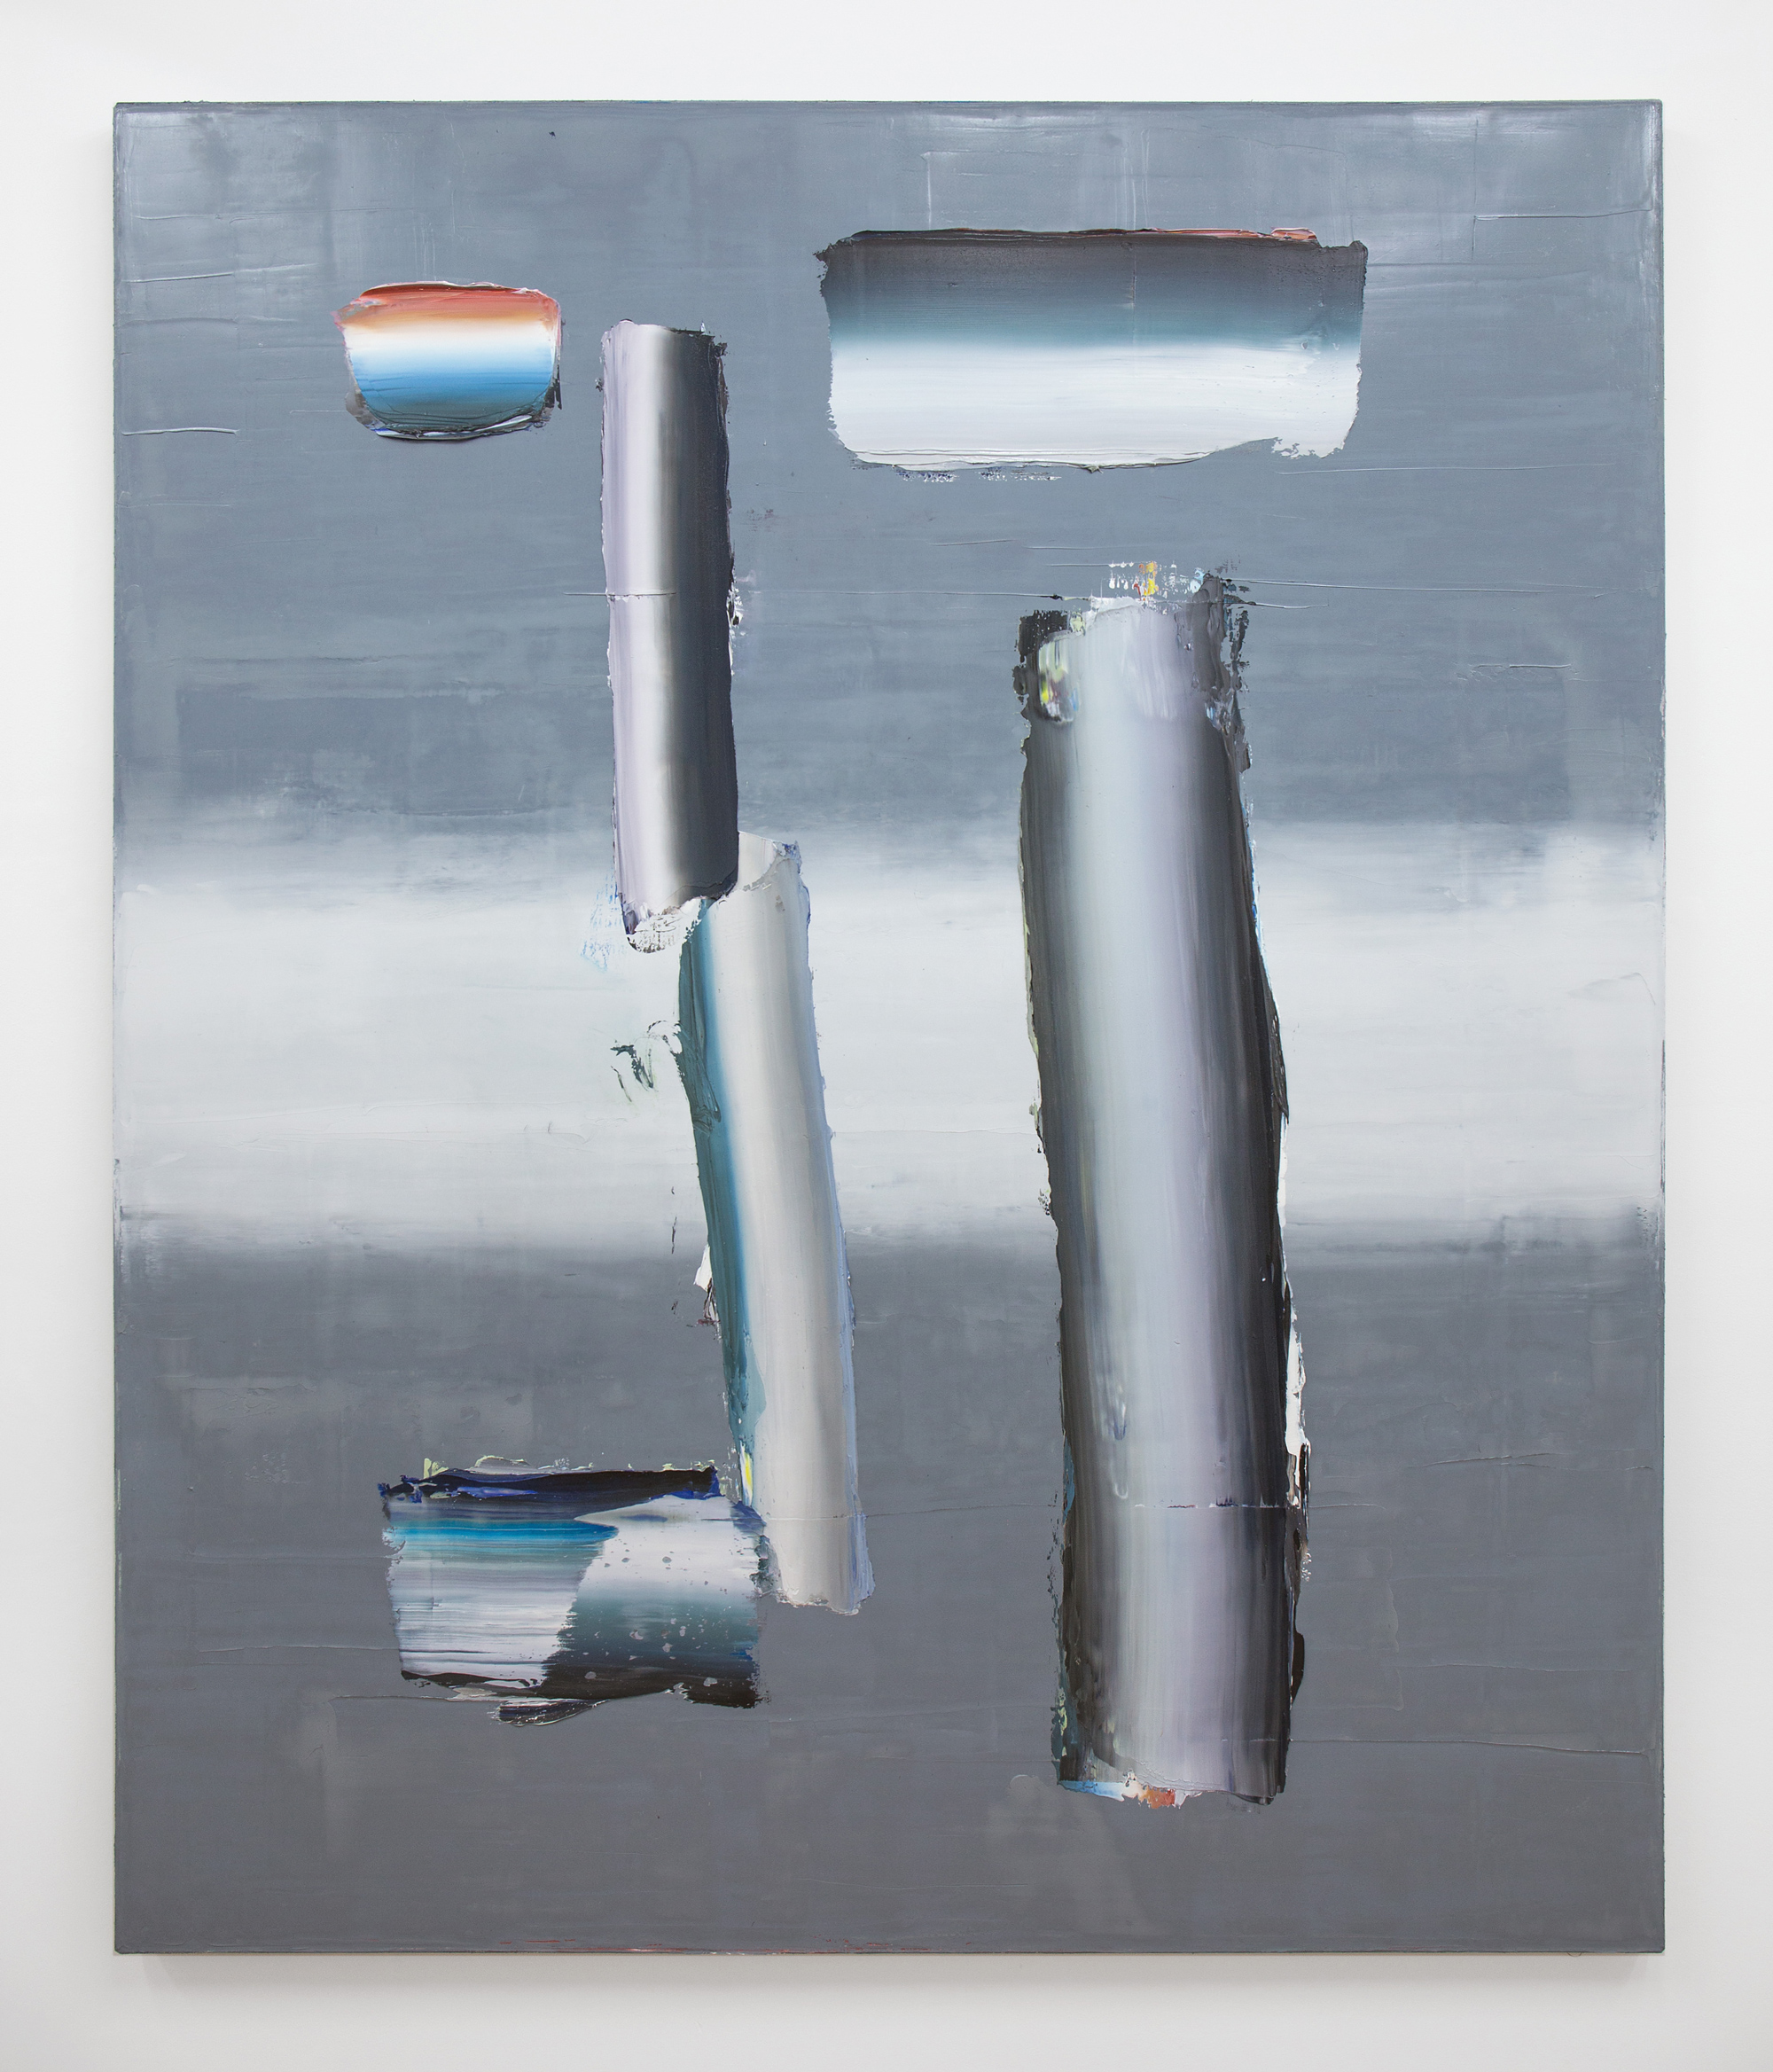 Anna Leonhardt 2016 Oil on Canvas 74 x 63 inches 2016 Marc Straus Gallery